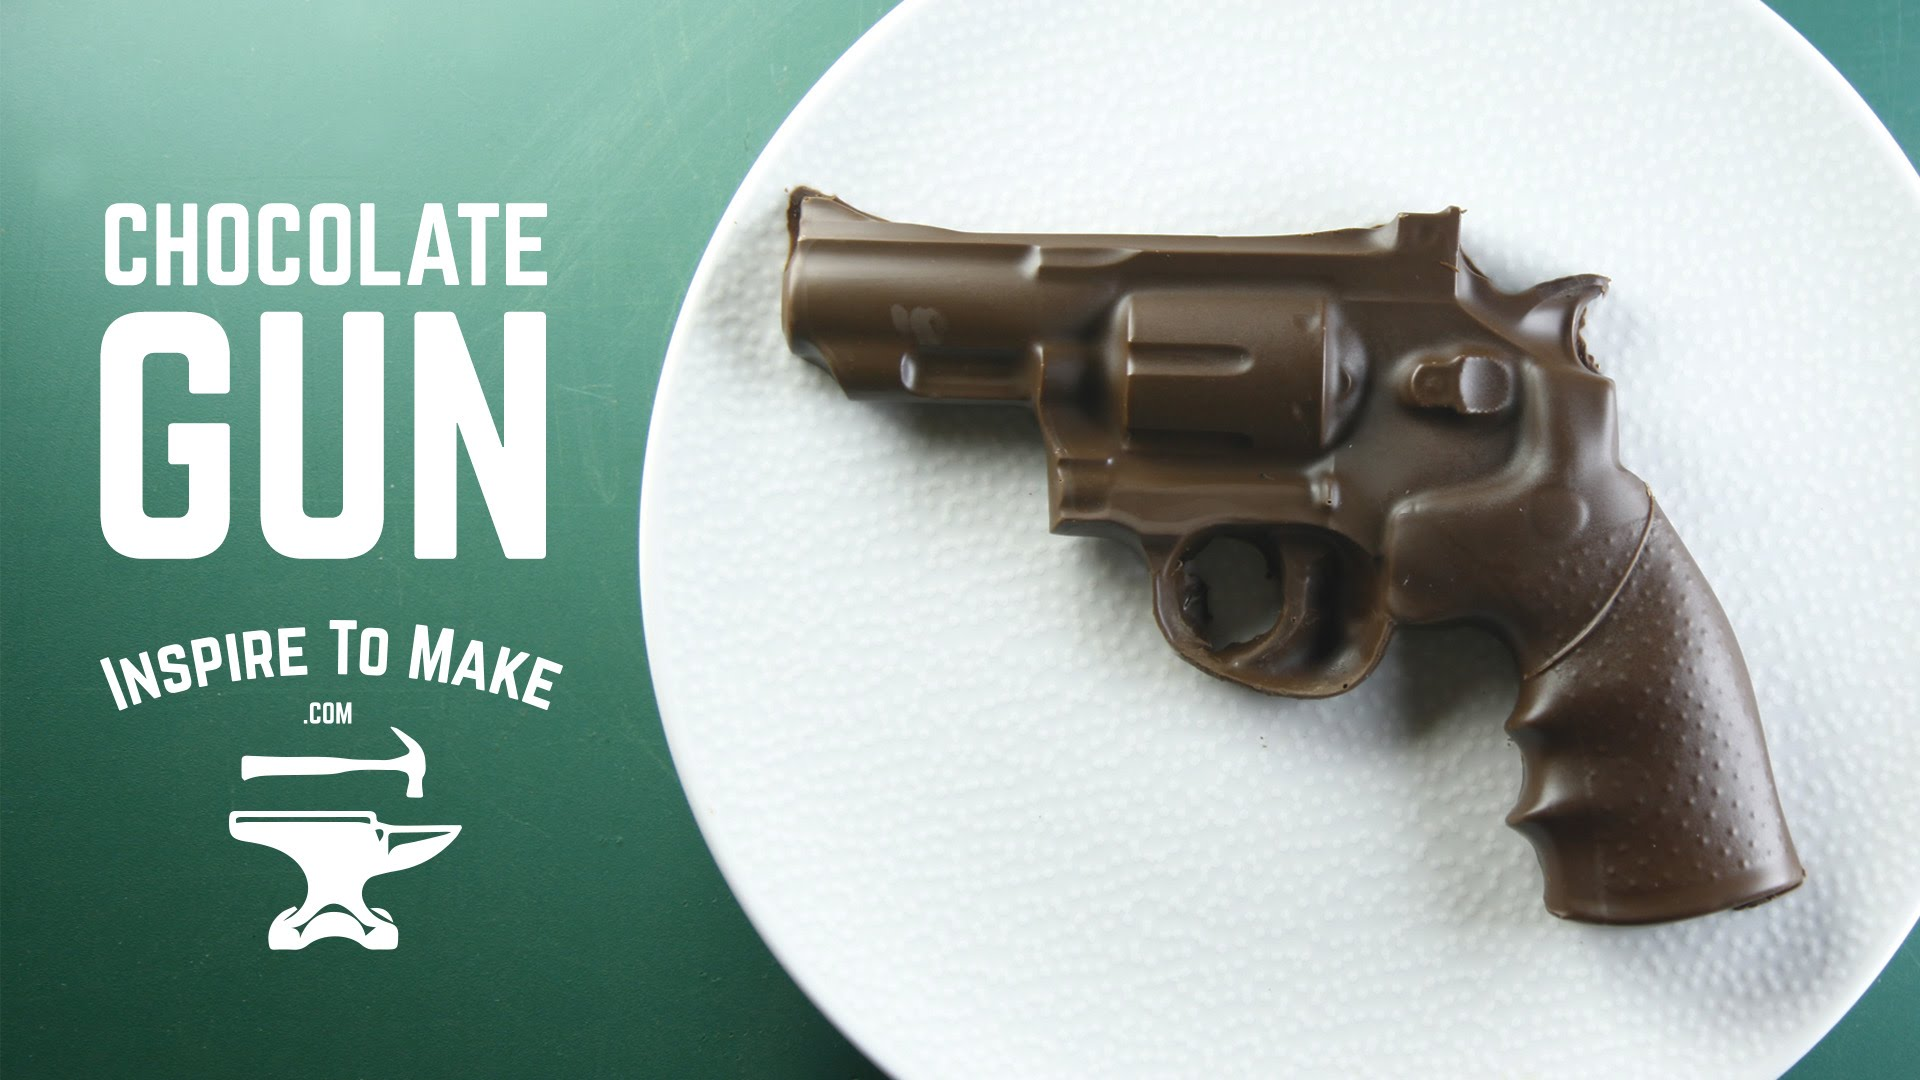 DIY Projects – Chocolate gun and a Vacuum Forming Machine